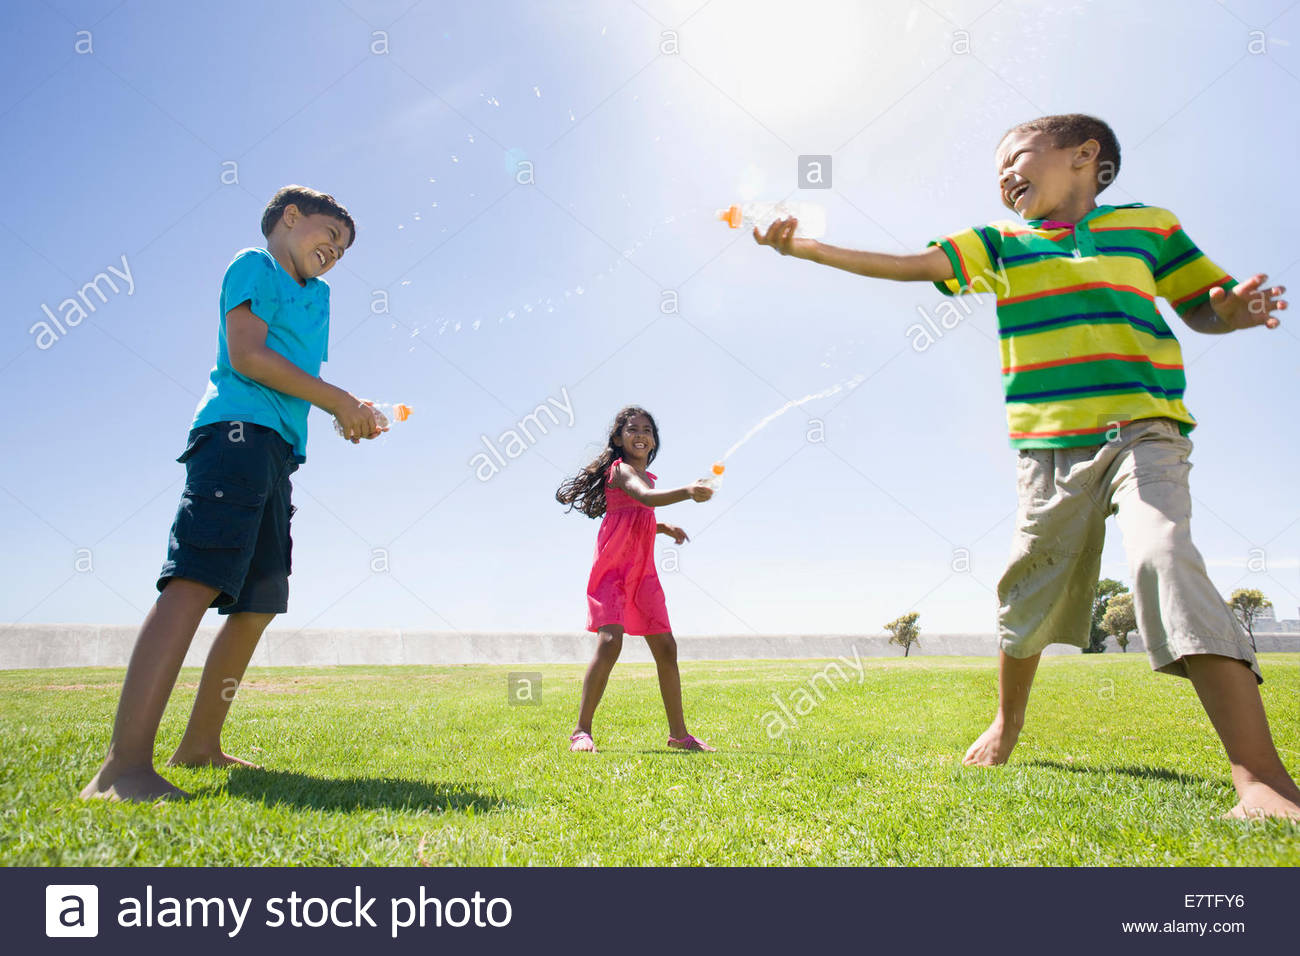 Children squirting water at each other at park - Stock Image